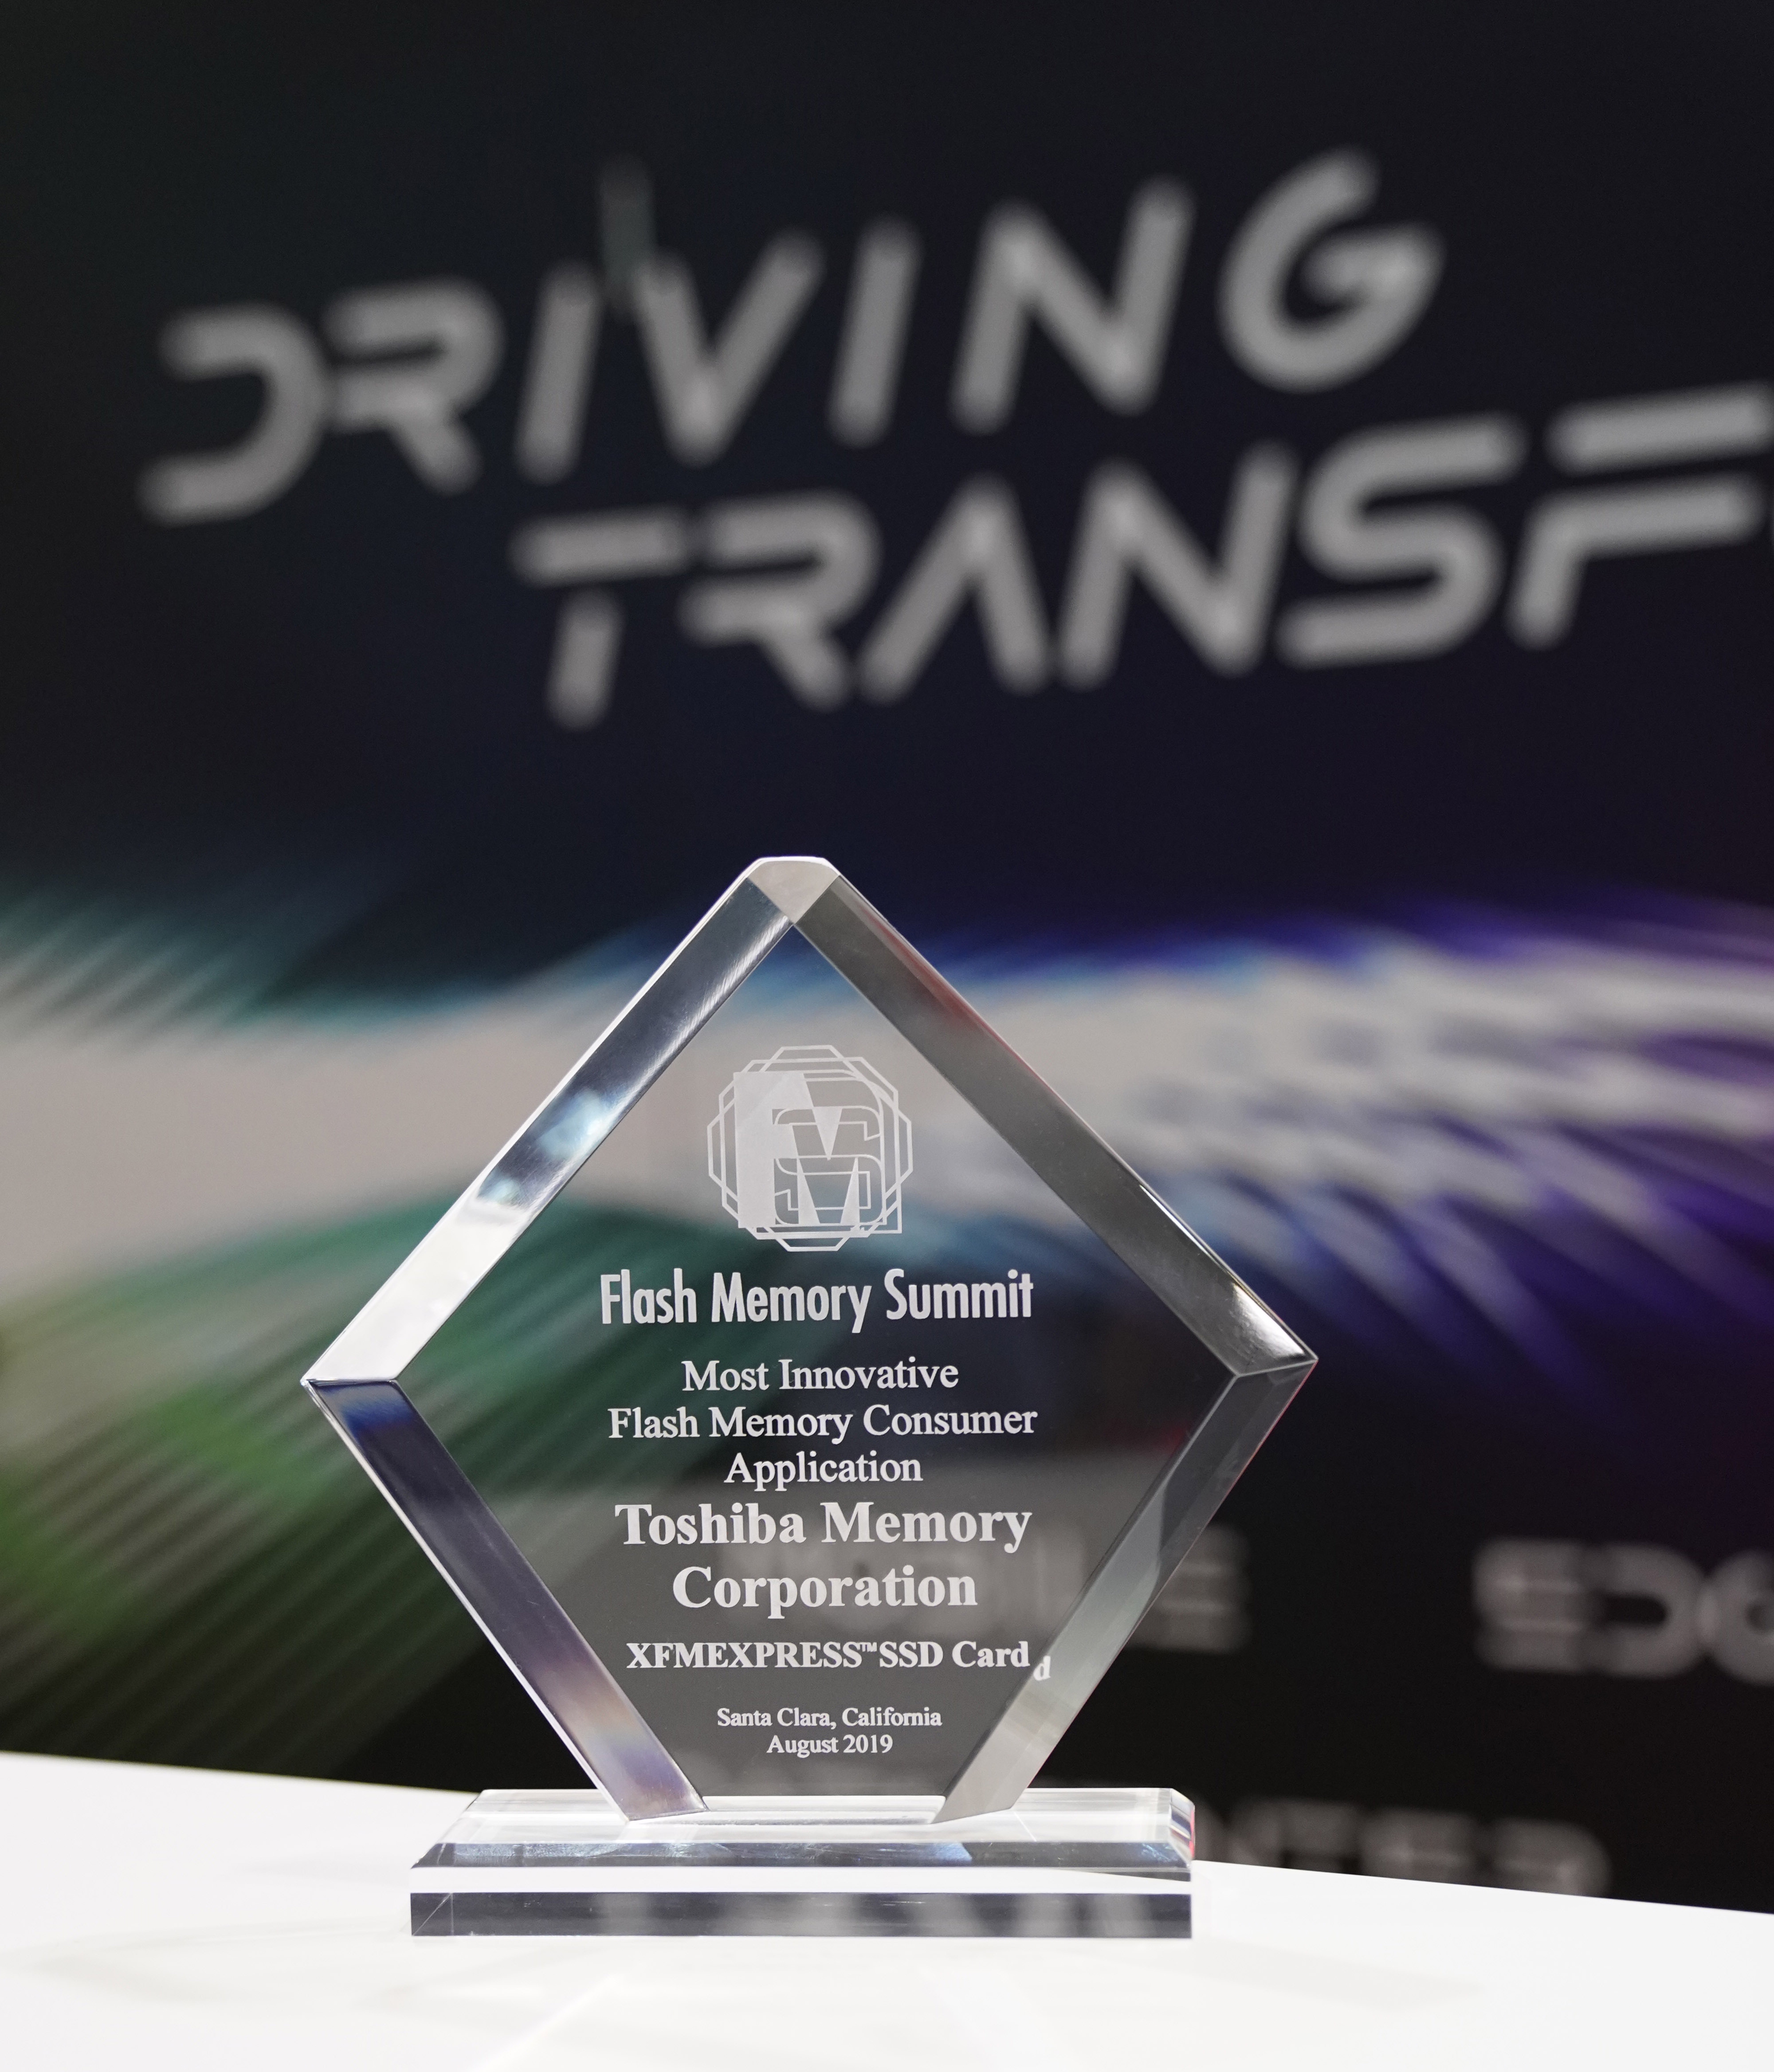 Toshiba Memory's XFMEXPRESS Technology Awarded 'Best of Show' at